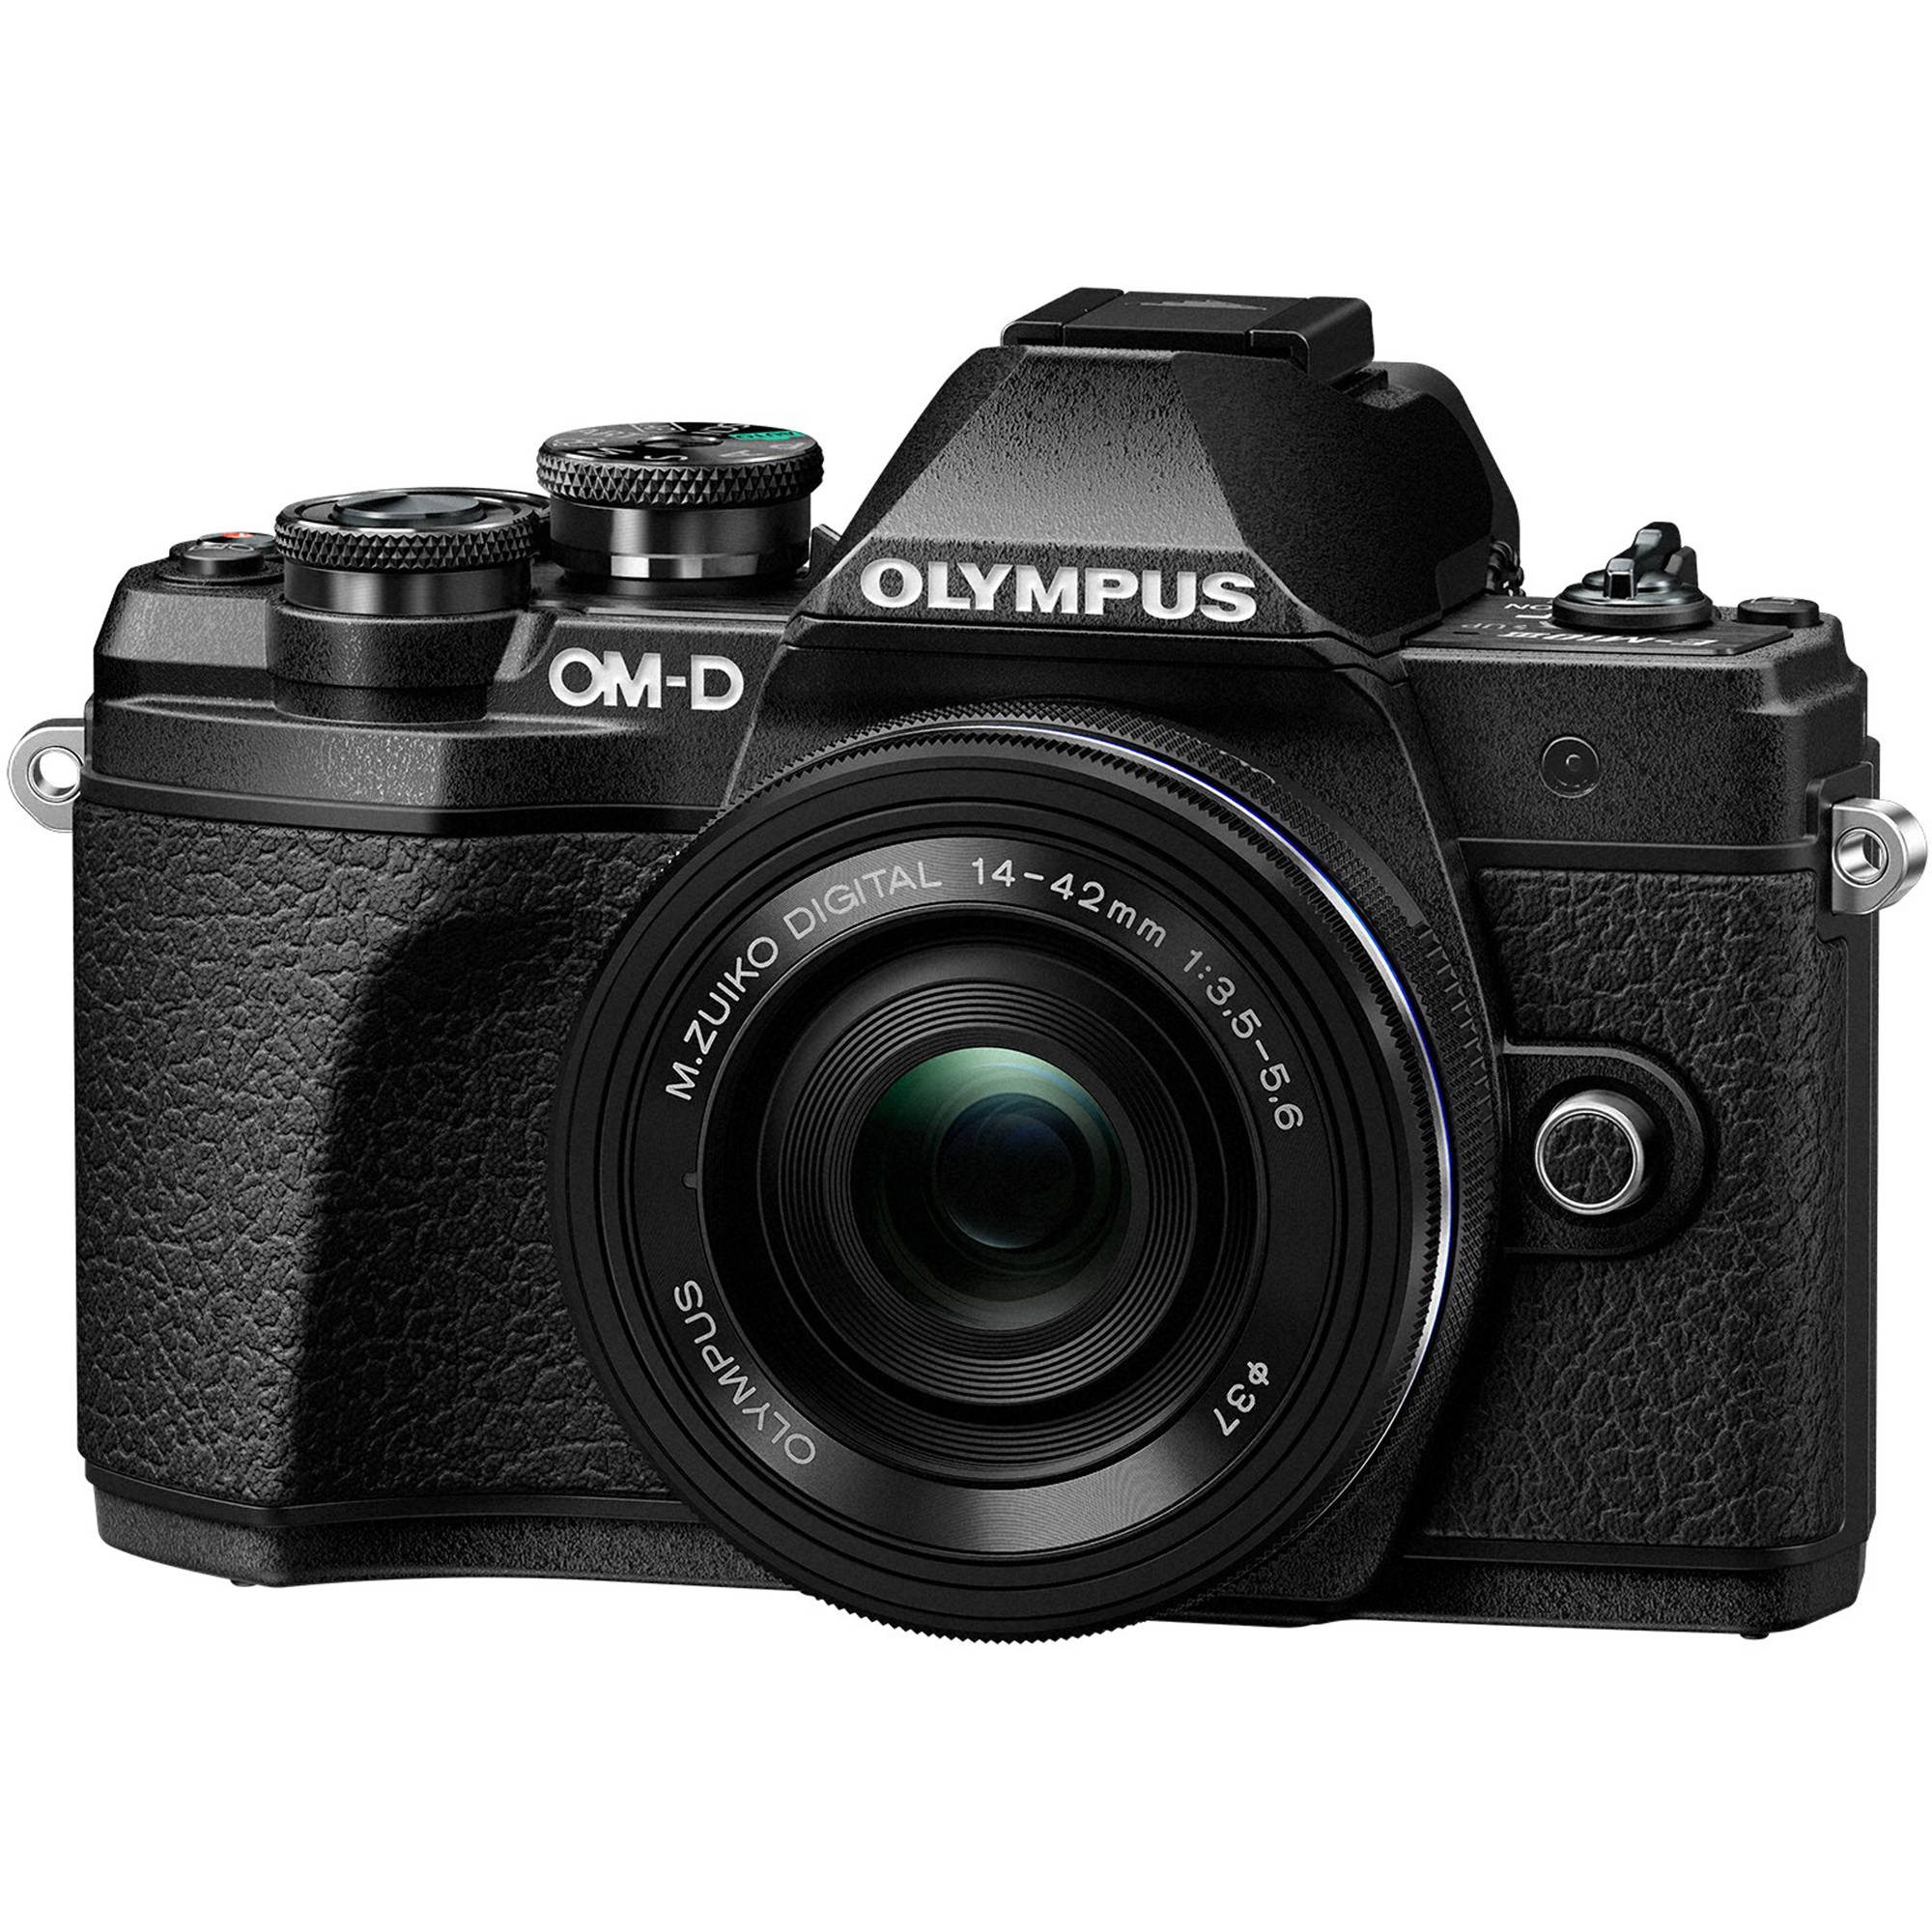 Olympus Digital Camera 5 Olympus OM-D E-M10 Mark III Mirrorless Micro Four Thirds Digital Camera  with 14-42mm EZ Lens (Black)